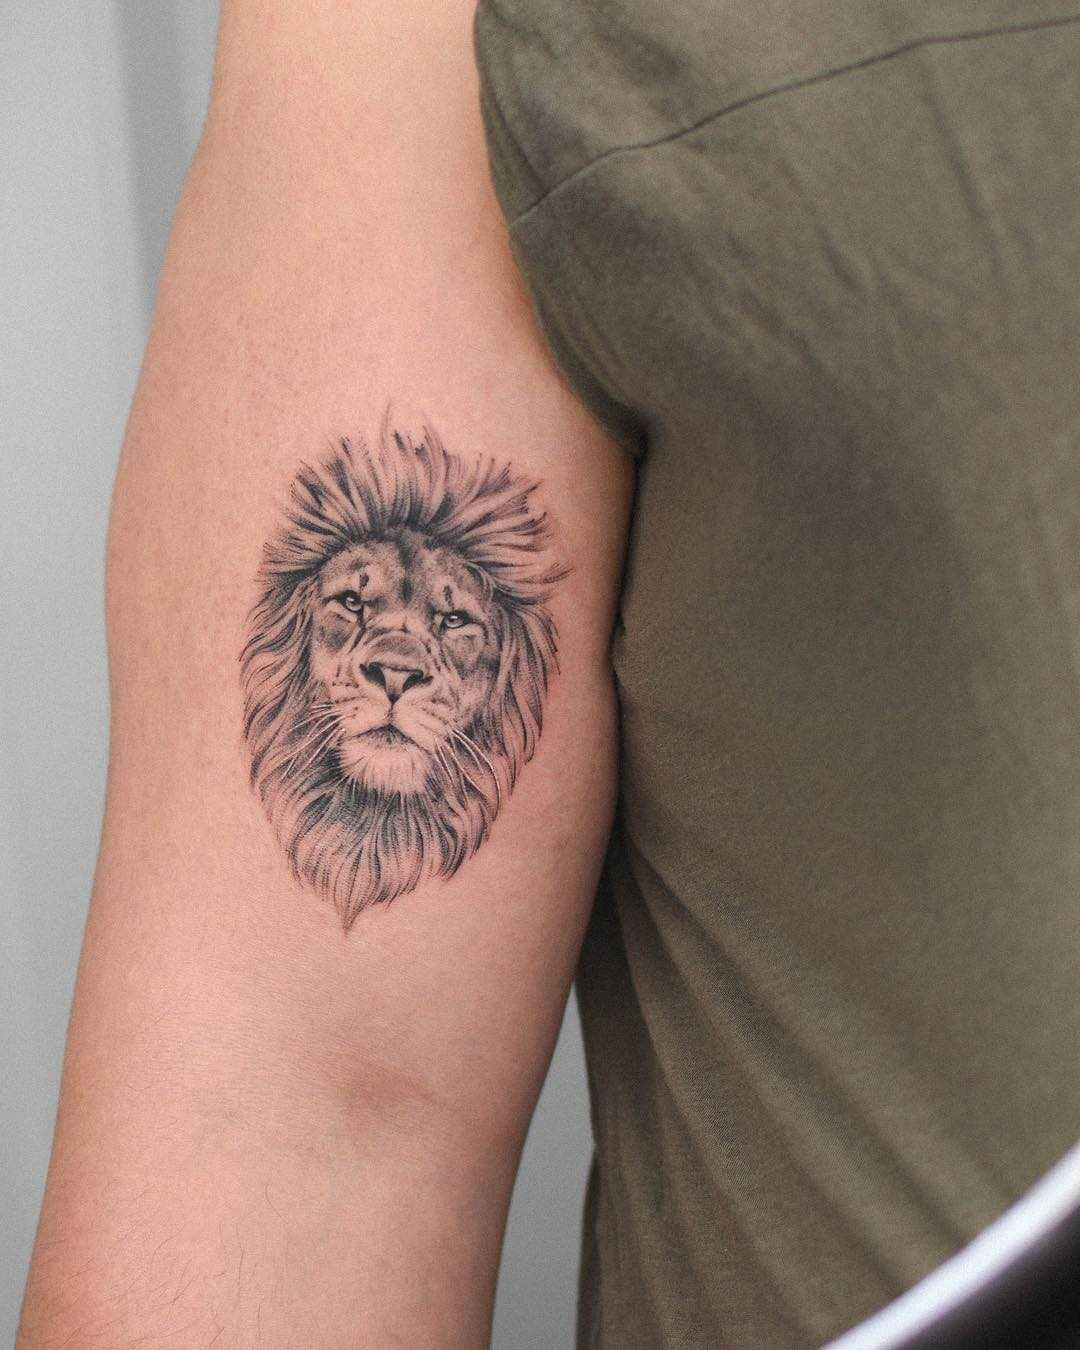 Hyper Realistic Lion Head Tattoo Inked On The Right Arm Small Lion Tattoo Lion Head Tattoos Lion Tattoo